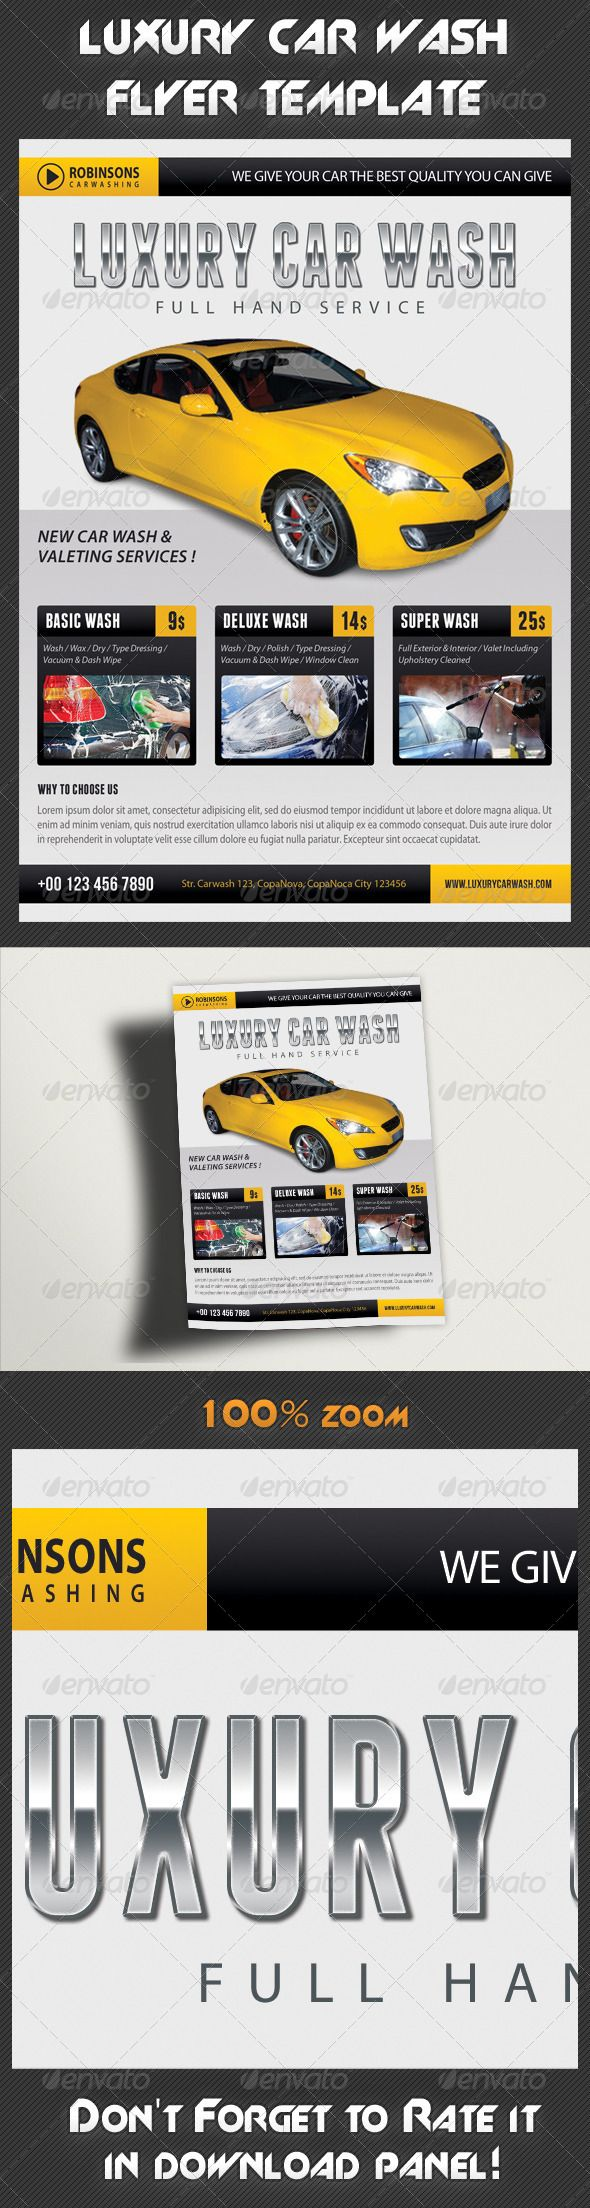 Car wash flyer 03 advertising auto clean auto detailing business